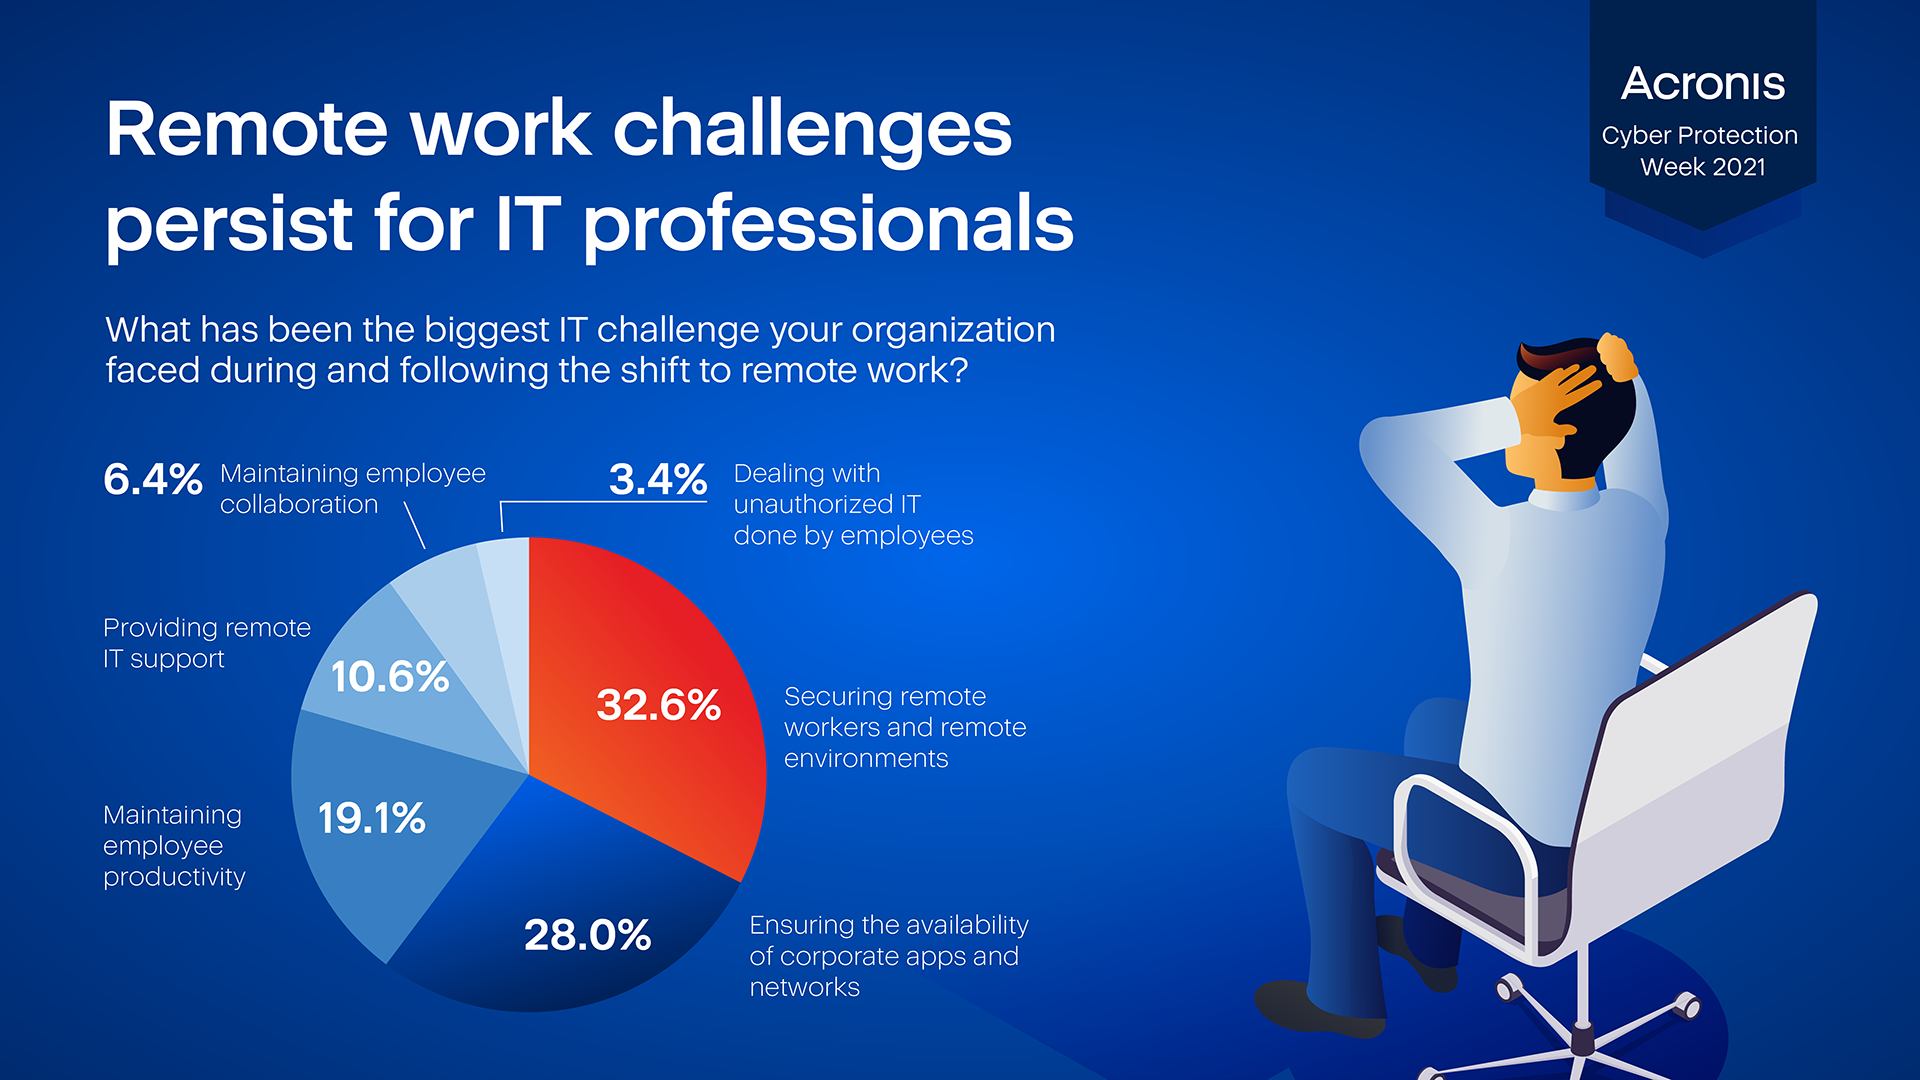 Remote work challenges persist for IT professionals